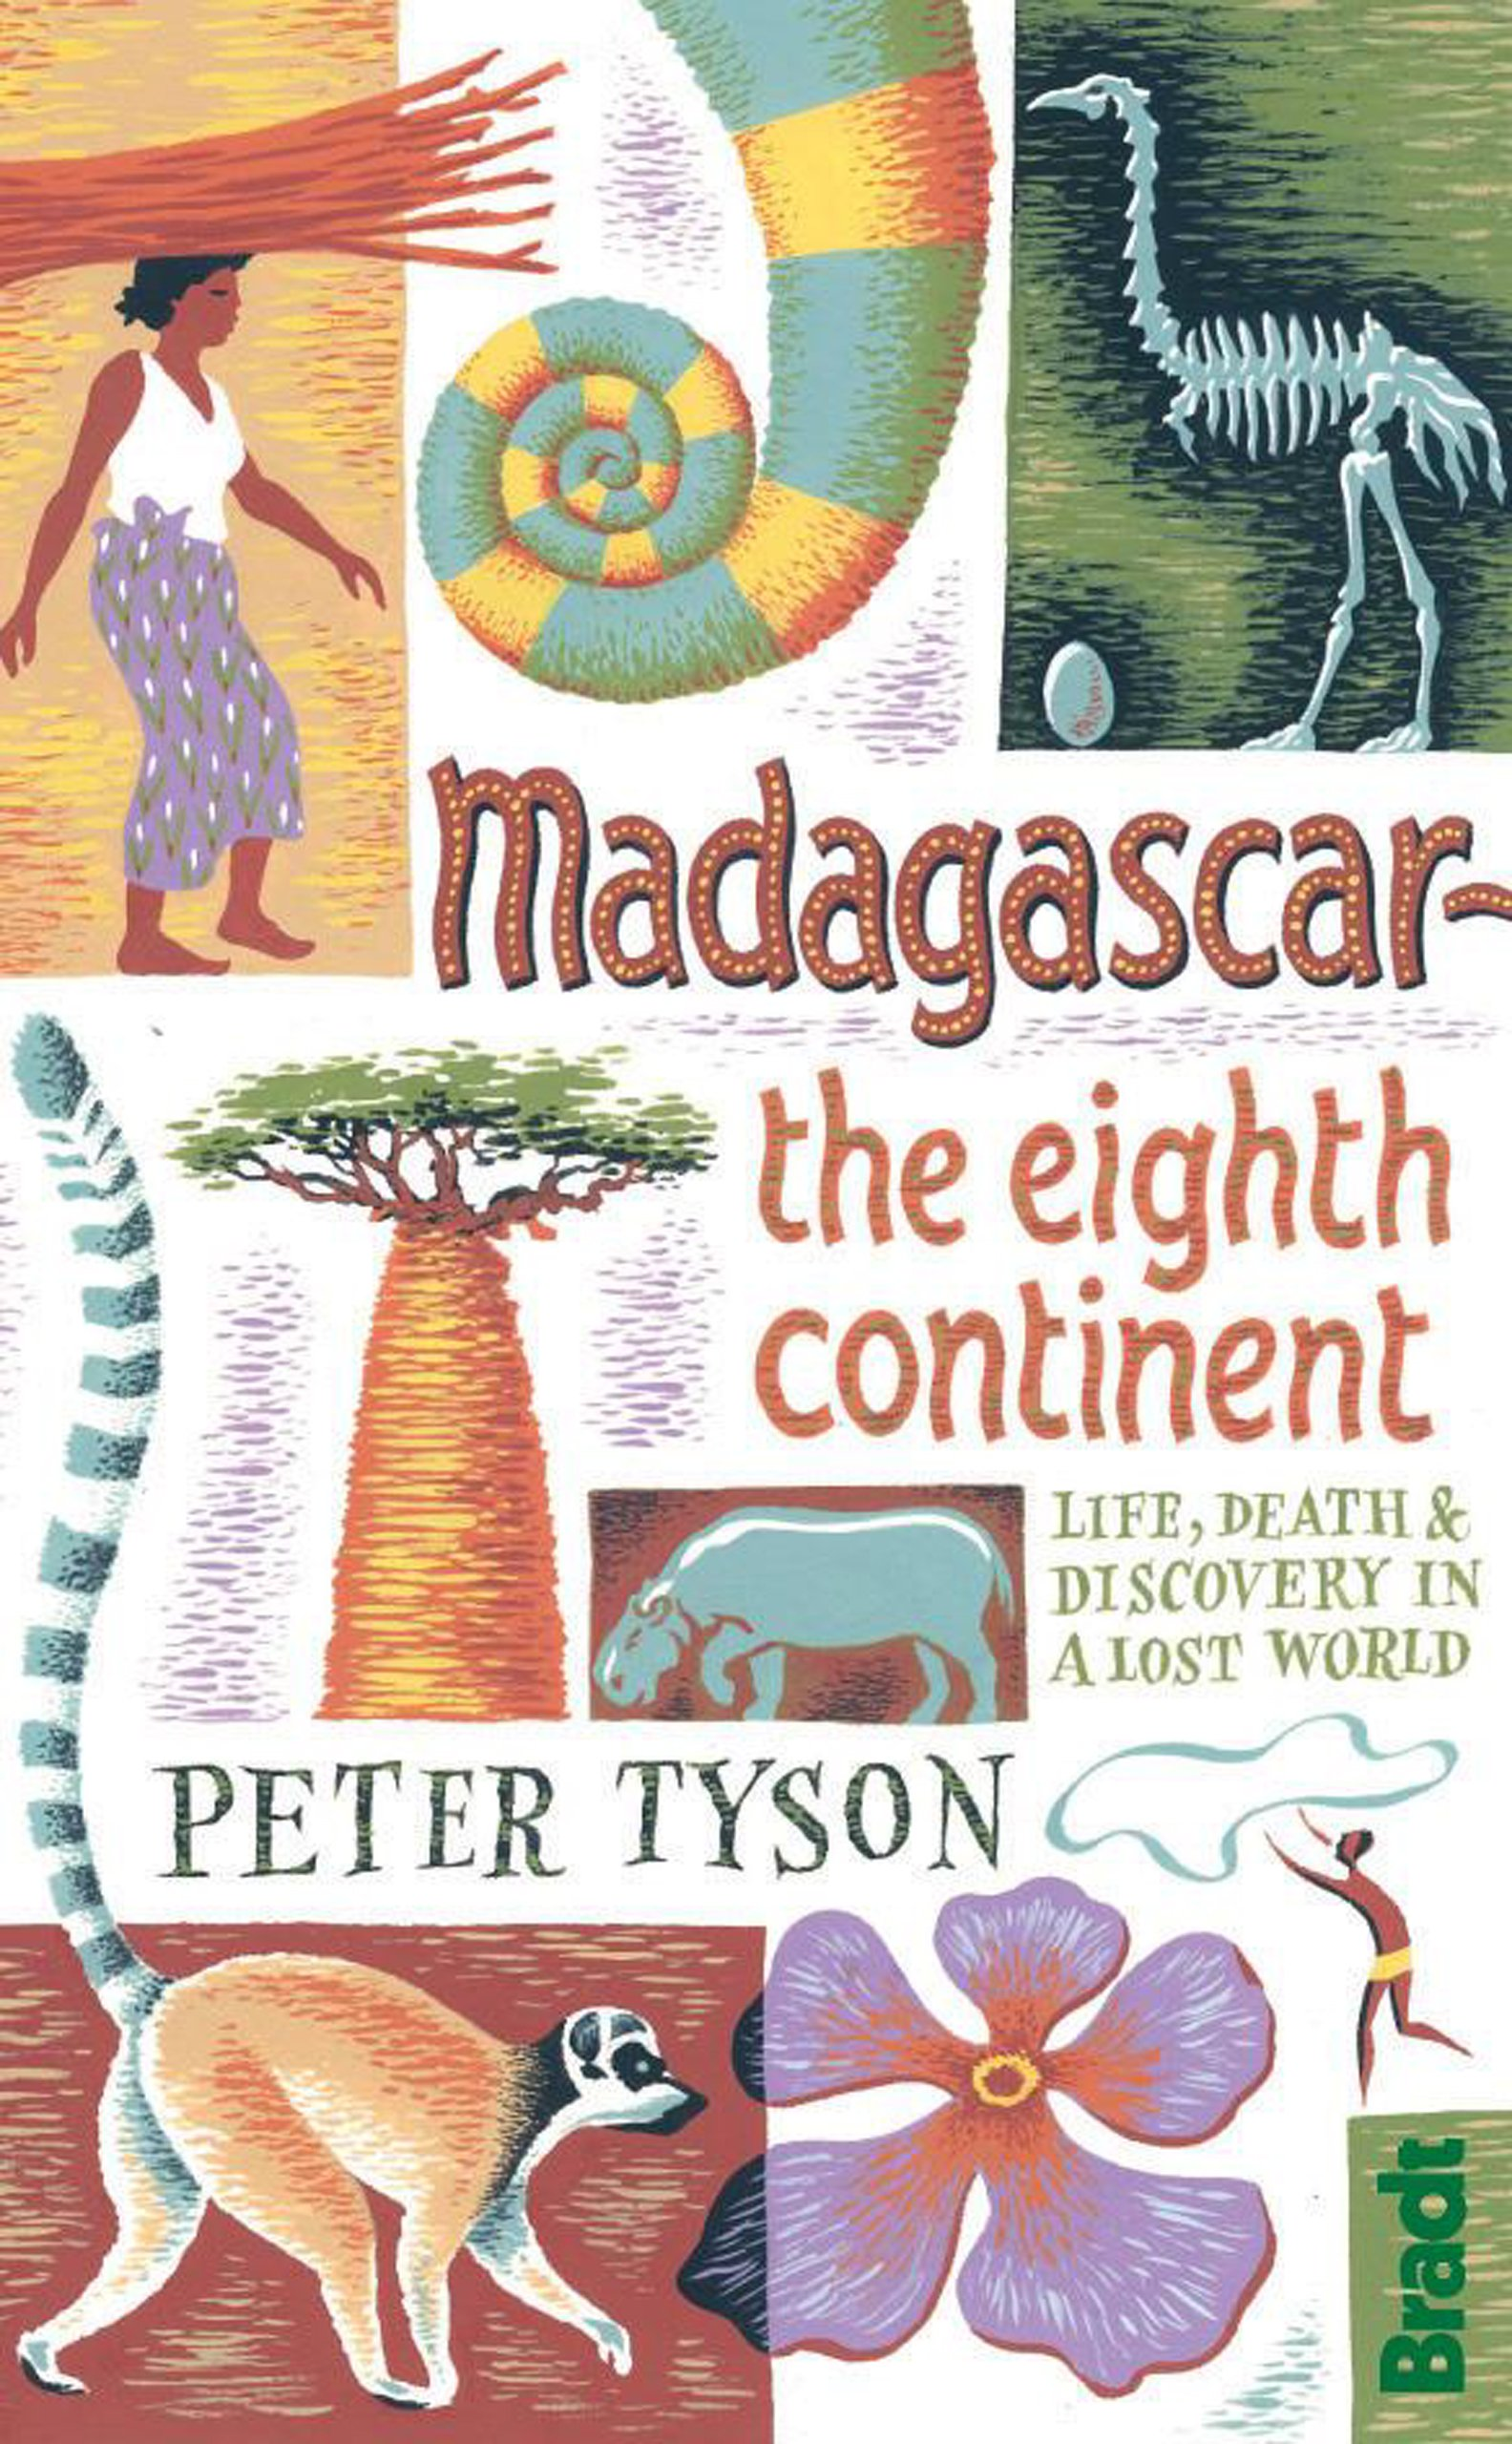 Madagascar: The Eighth Continent: Life, Death and Discovery in a Lost World (Bradt Travel Guides)